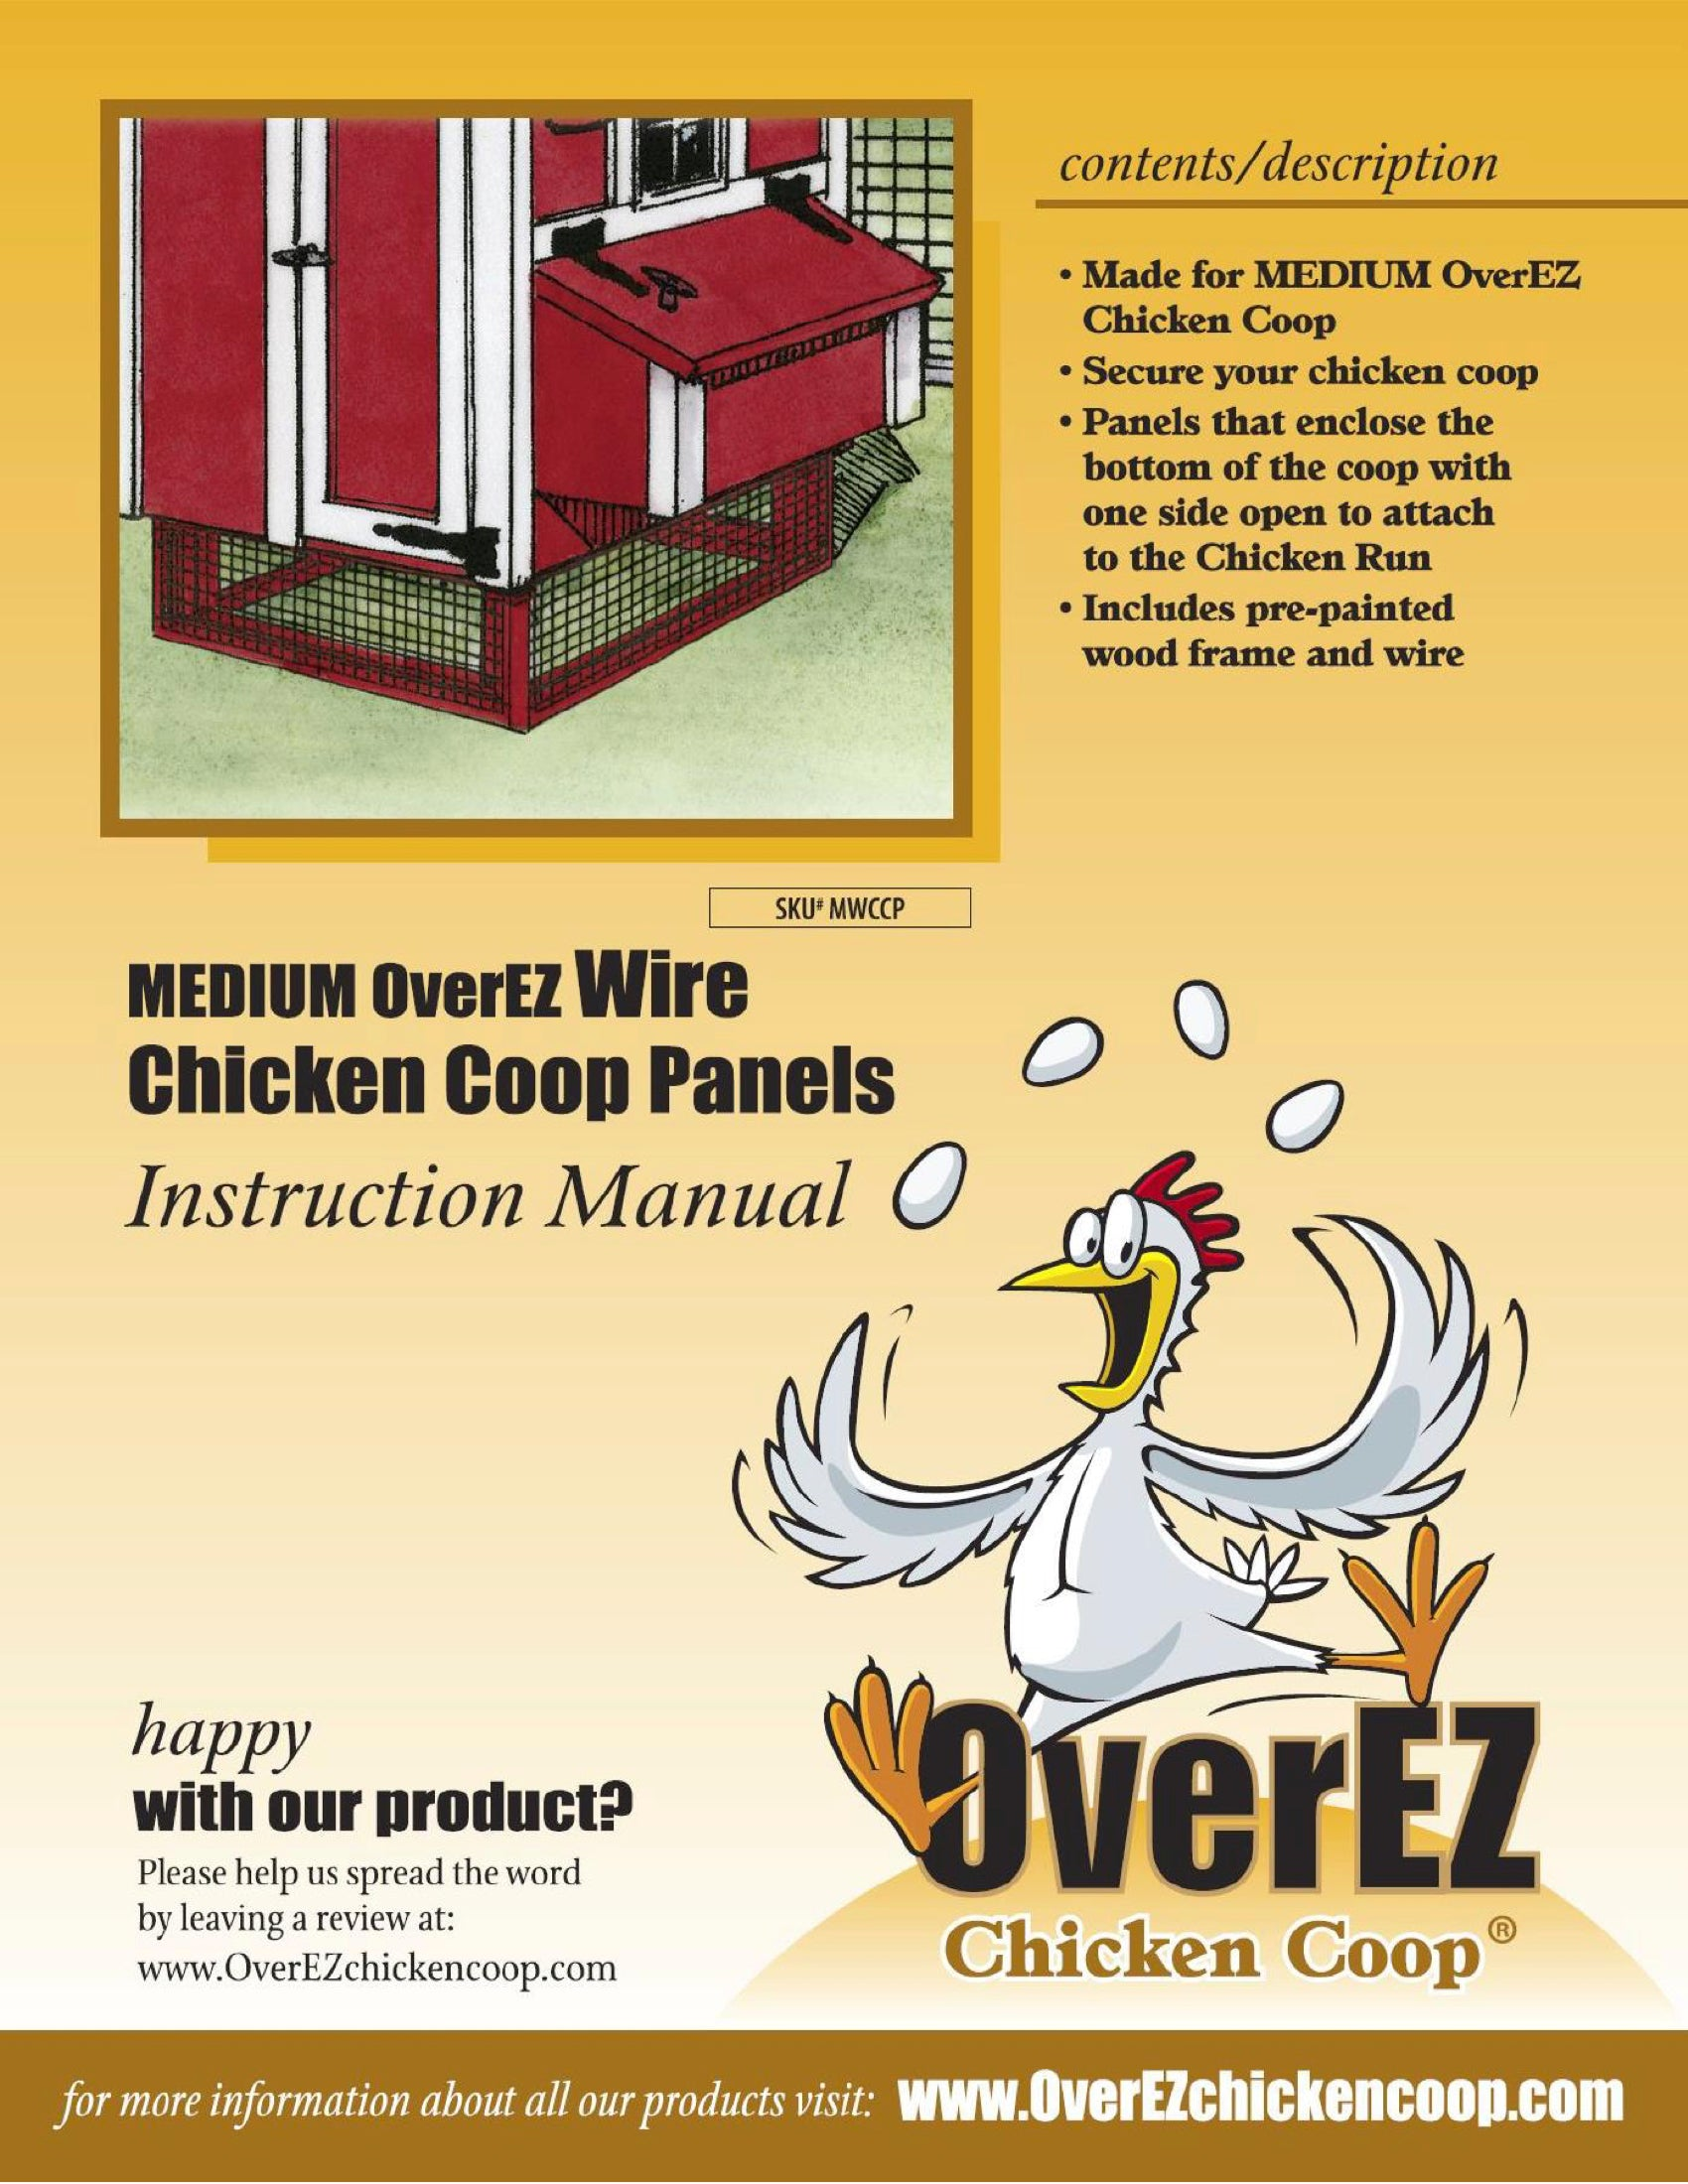 Medium OverEZ Wire Chicken Coop Panels Instructions